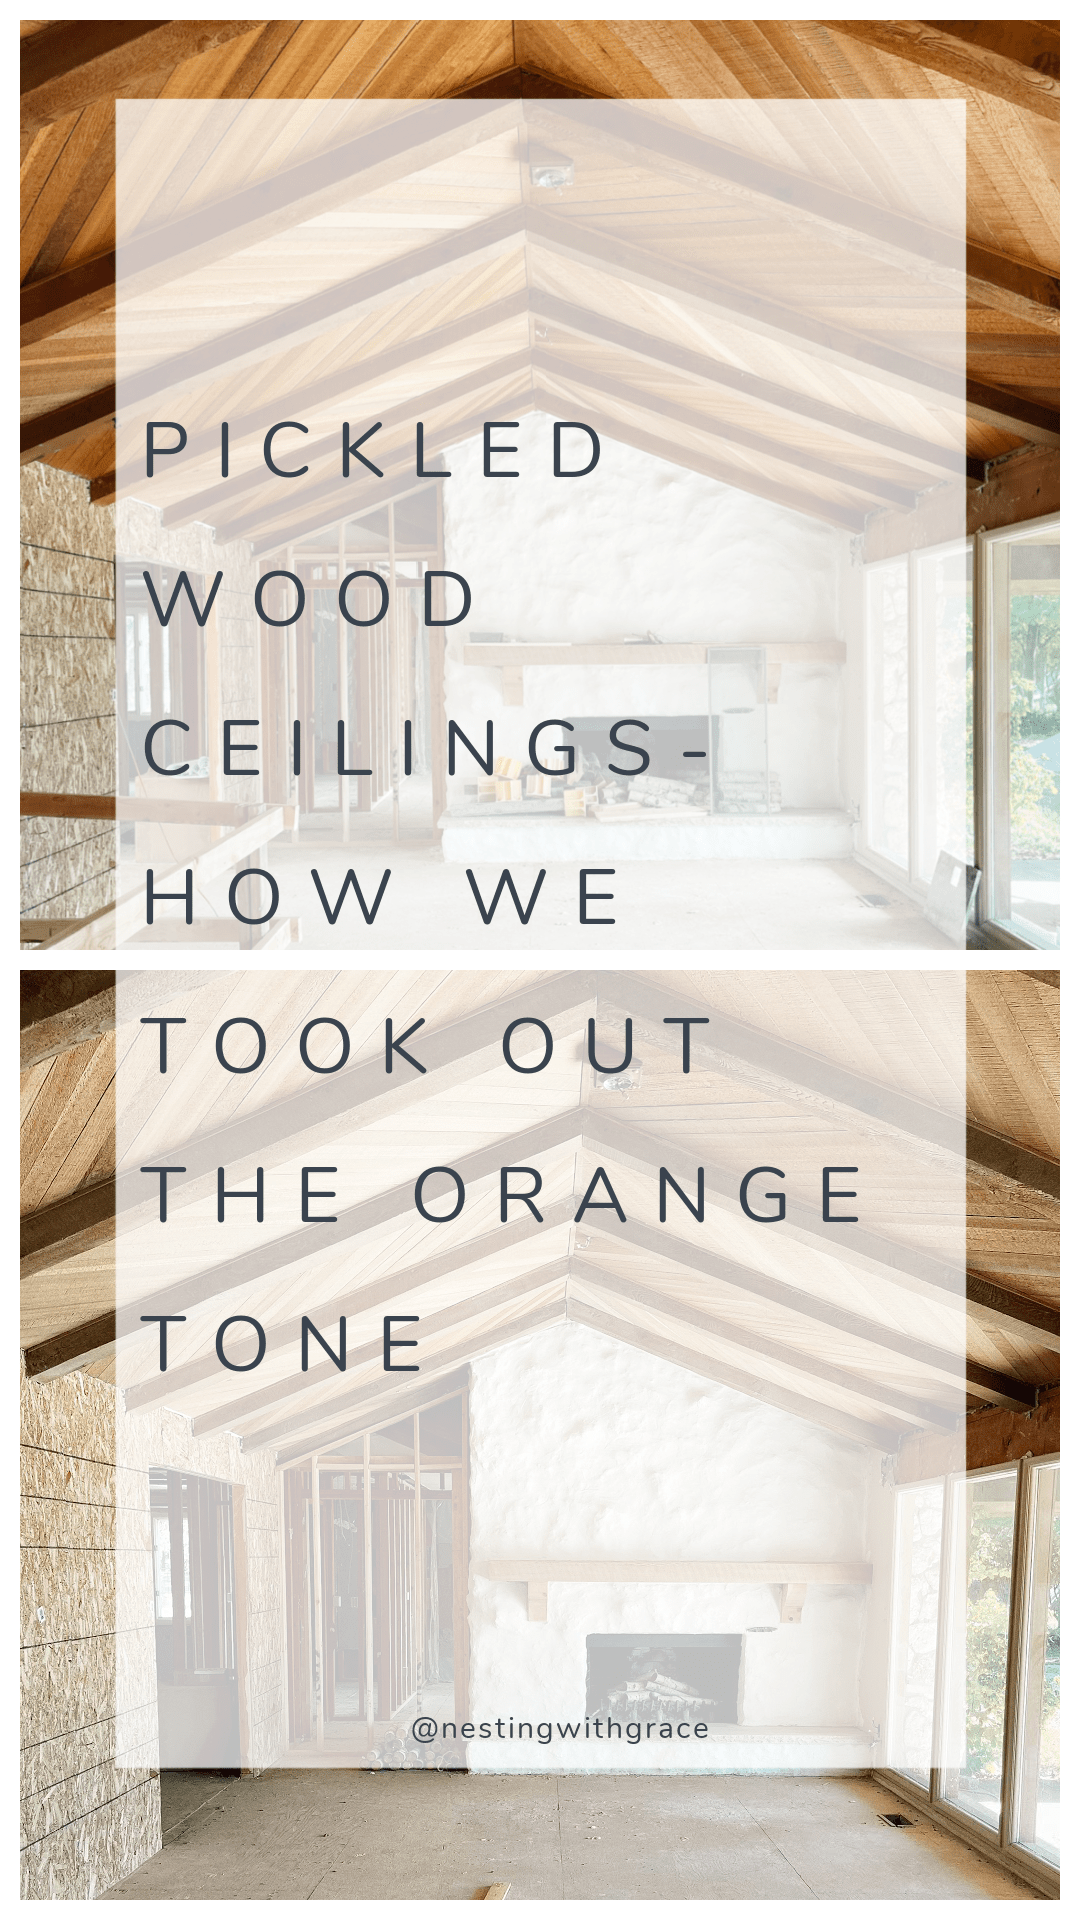 Pickled Wood Ceilings- How we took out the Orange Tone